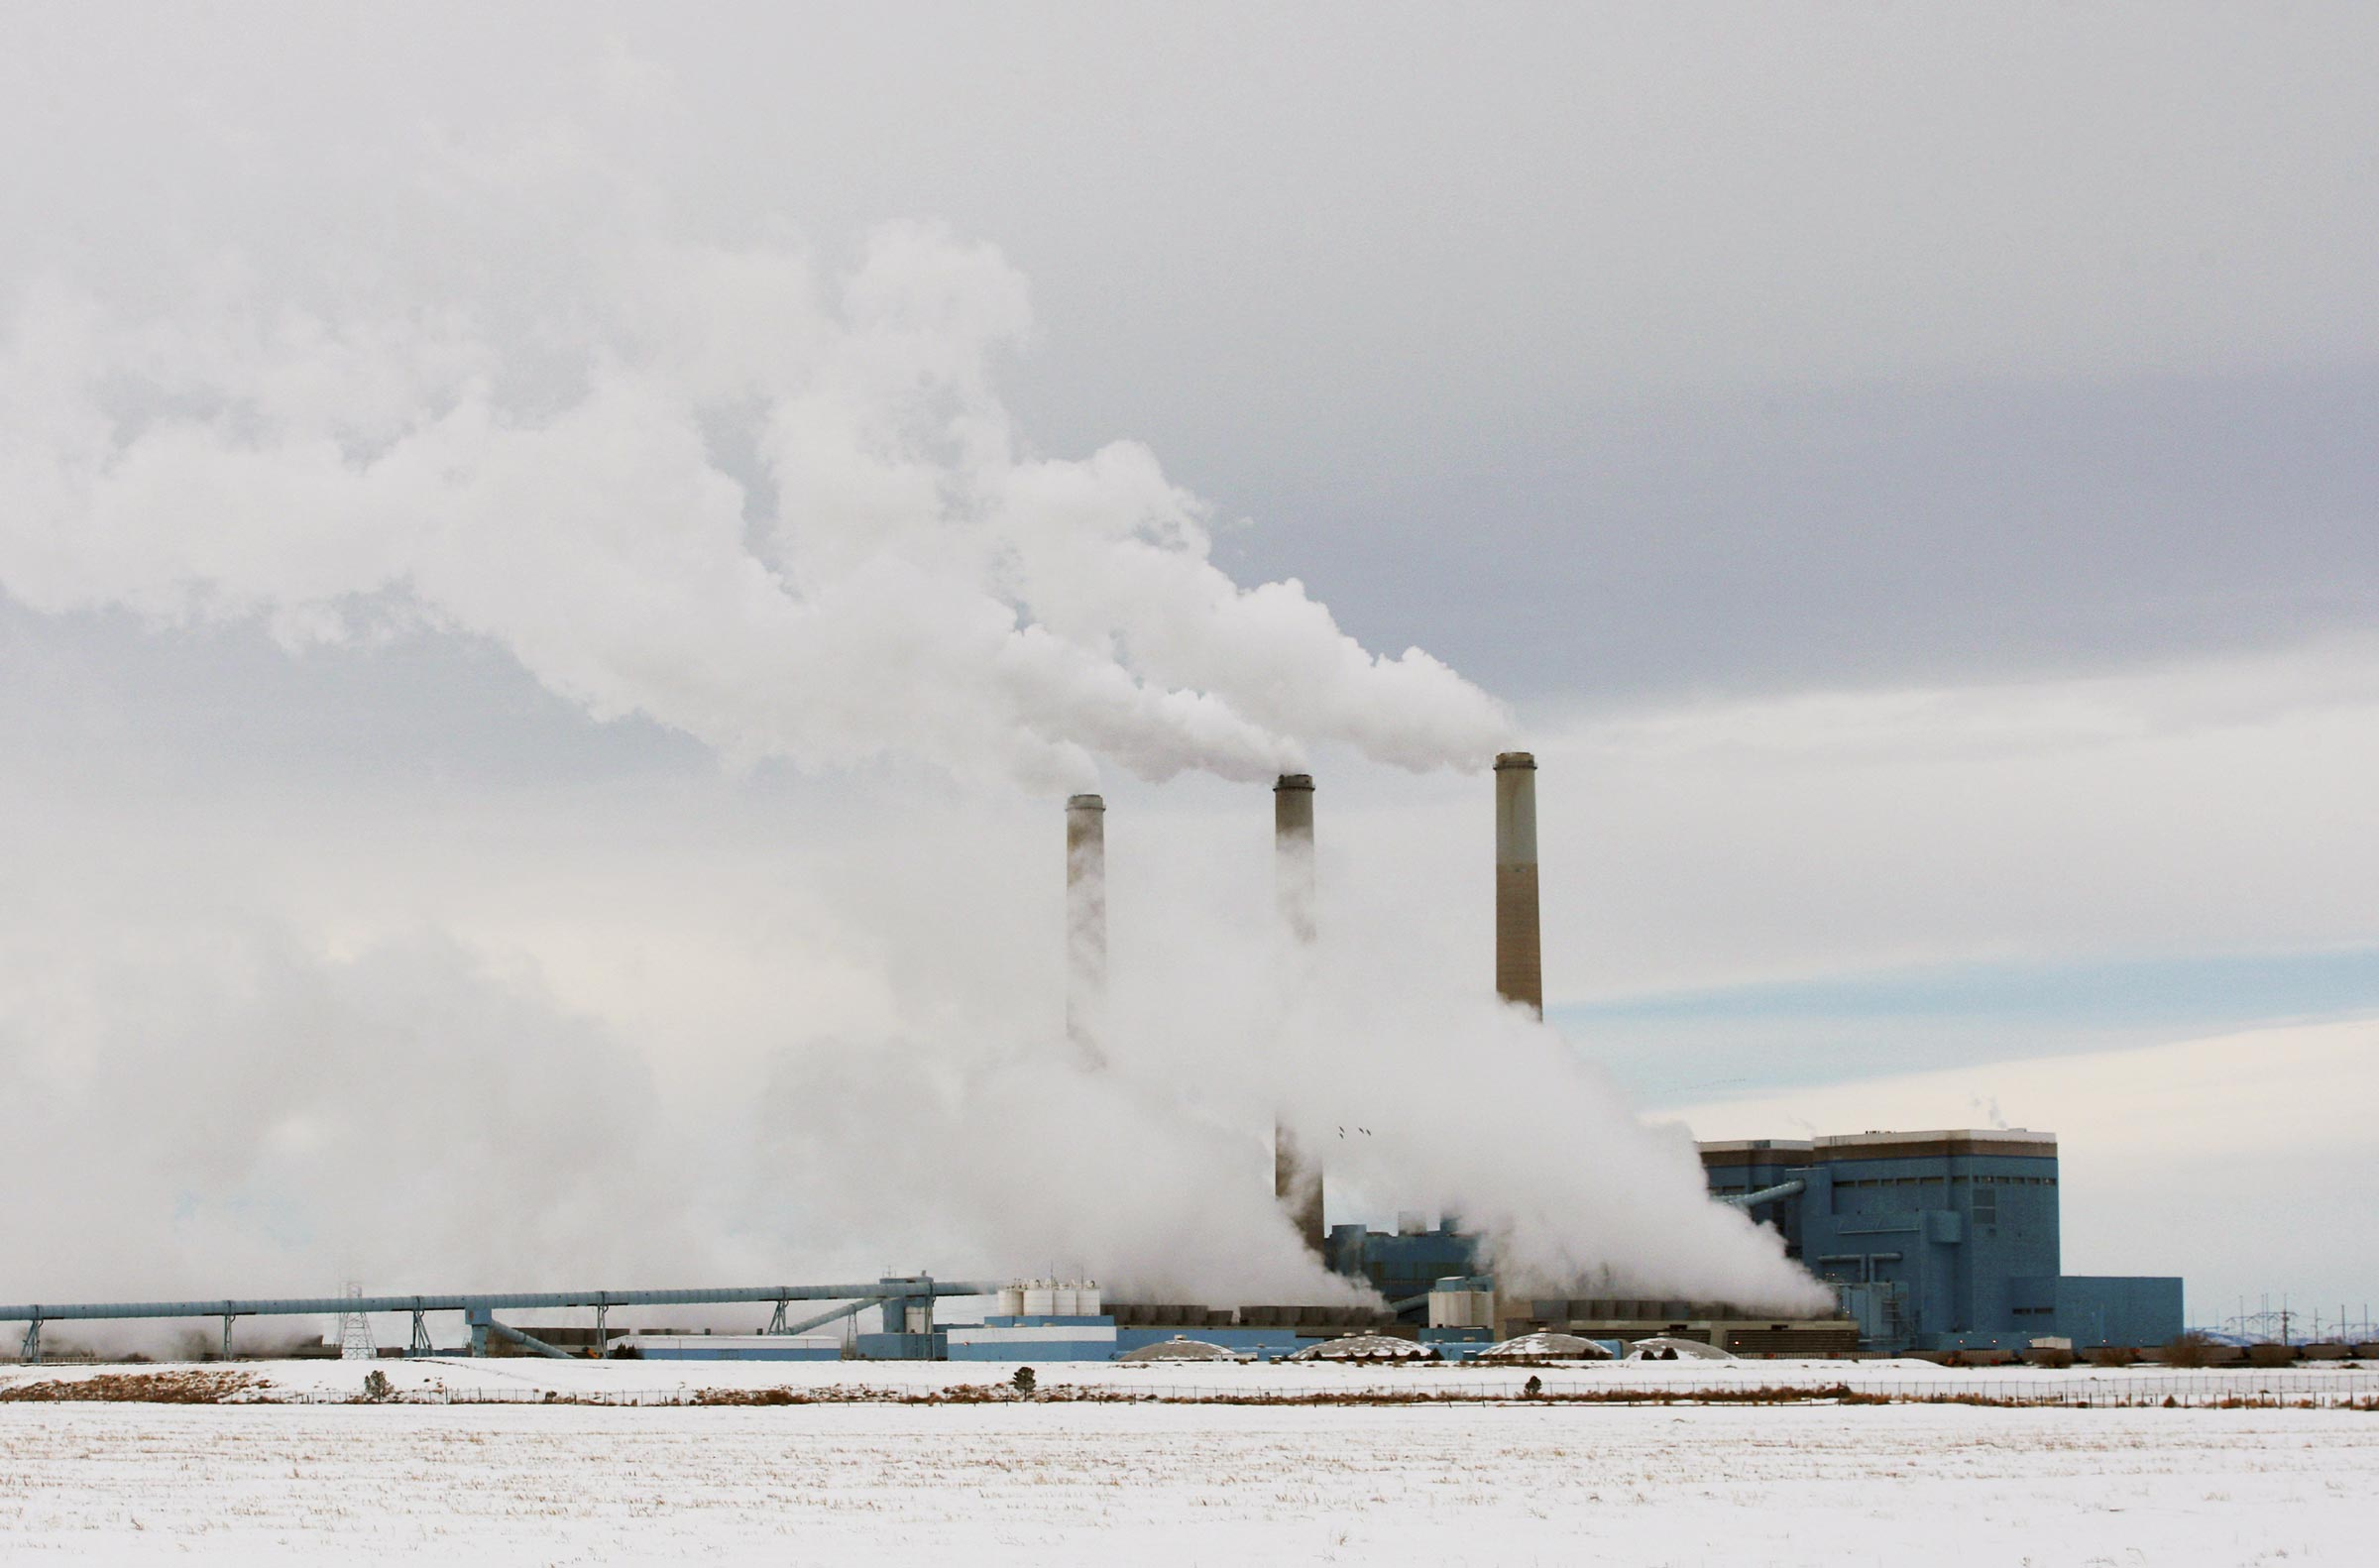 In this Feb. 11, 2014, file photo, steam rises from the stacks of Basin Electric's Laramie River Station coal-fired power plant near Wheatland, Wyo. (AP Photo/The Casper Star-Tribune, Alan Rogers)